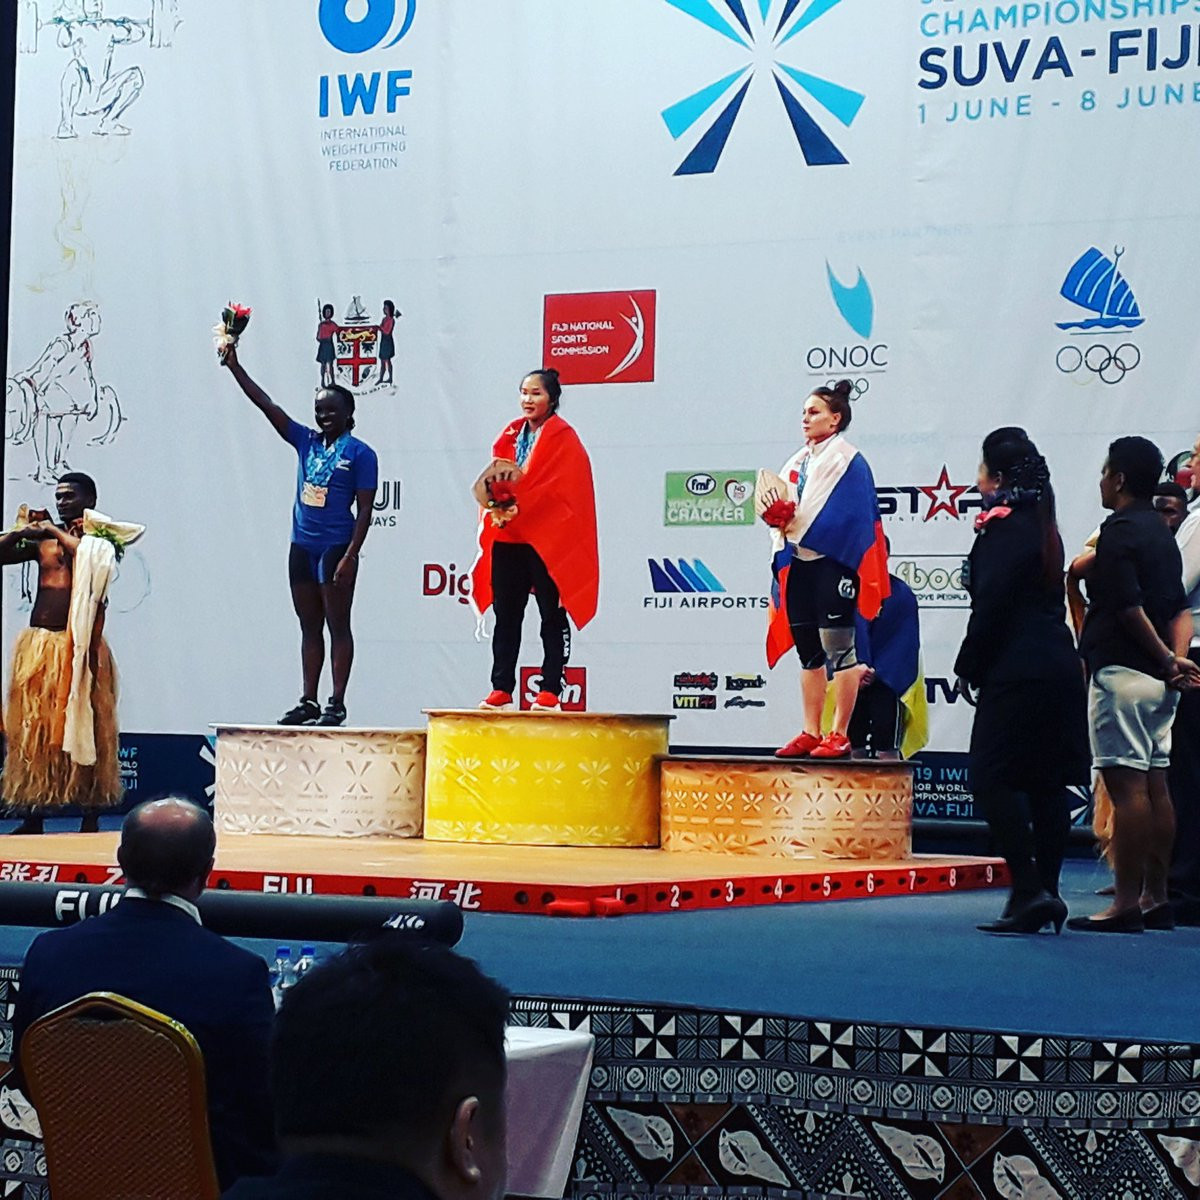 China's Gan Hongyan celebrates her victory in the 55kg category as its women's team maintained its 100 per cent success record at the IWF Junior World Championships in Suva ©Twitter